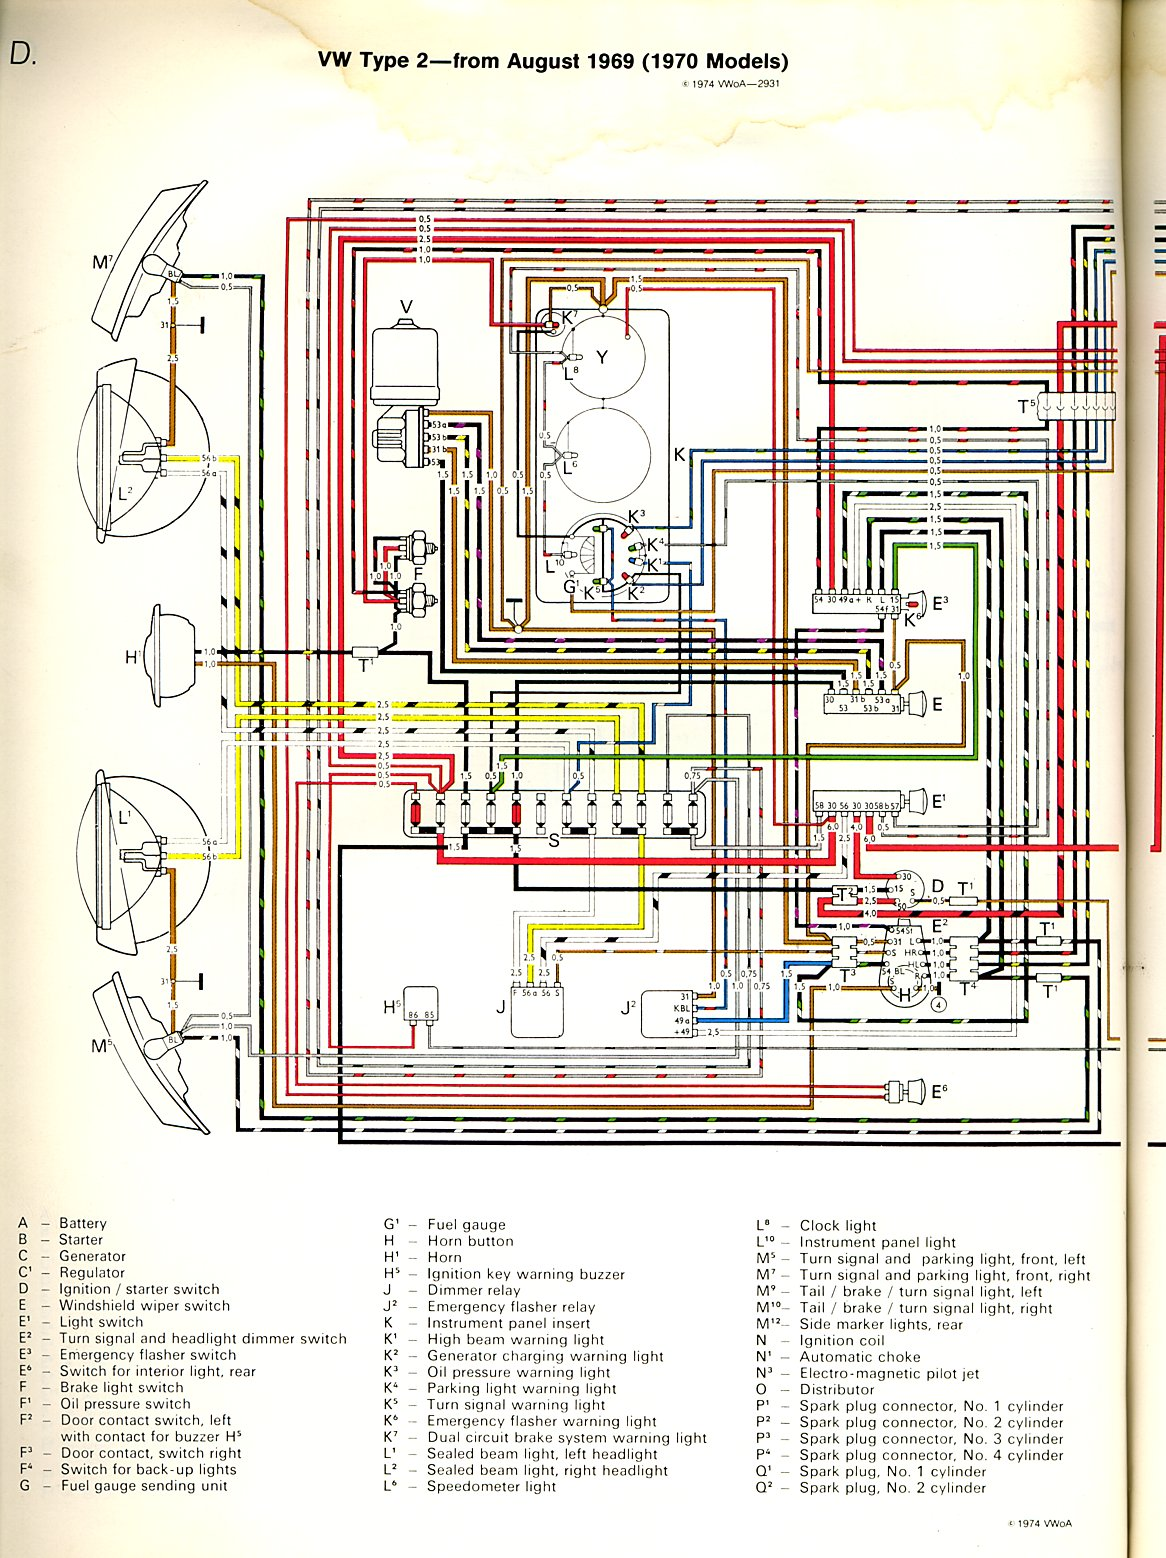 wire schematic 93 chevy 350 3500 thesamba.com :: type 2 wiring diagrams